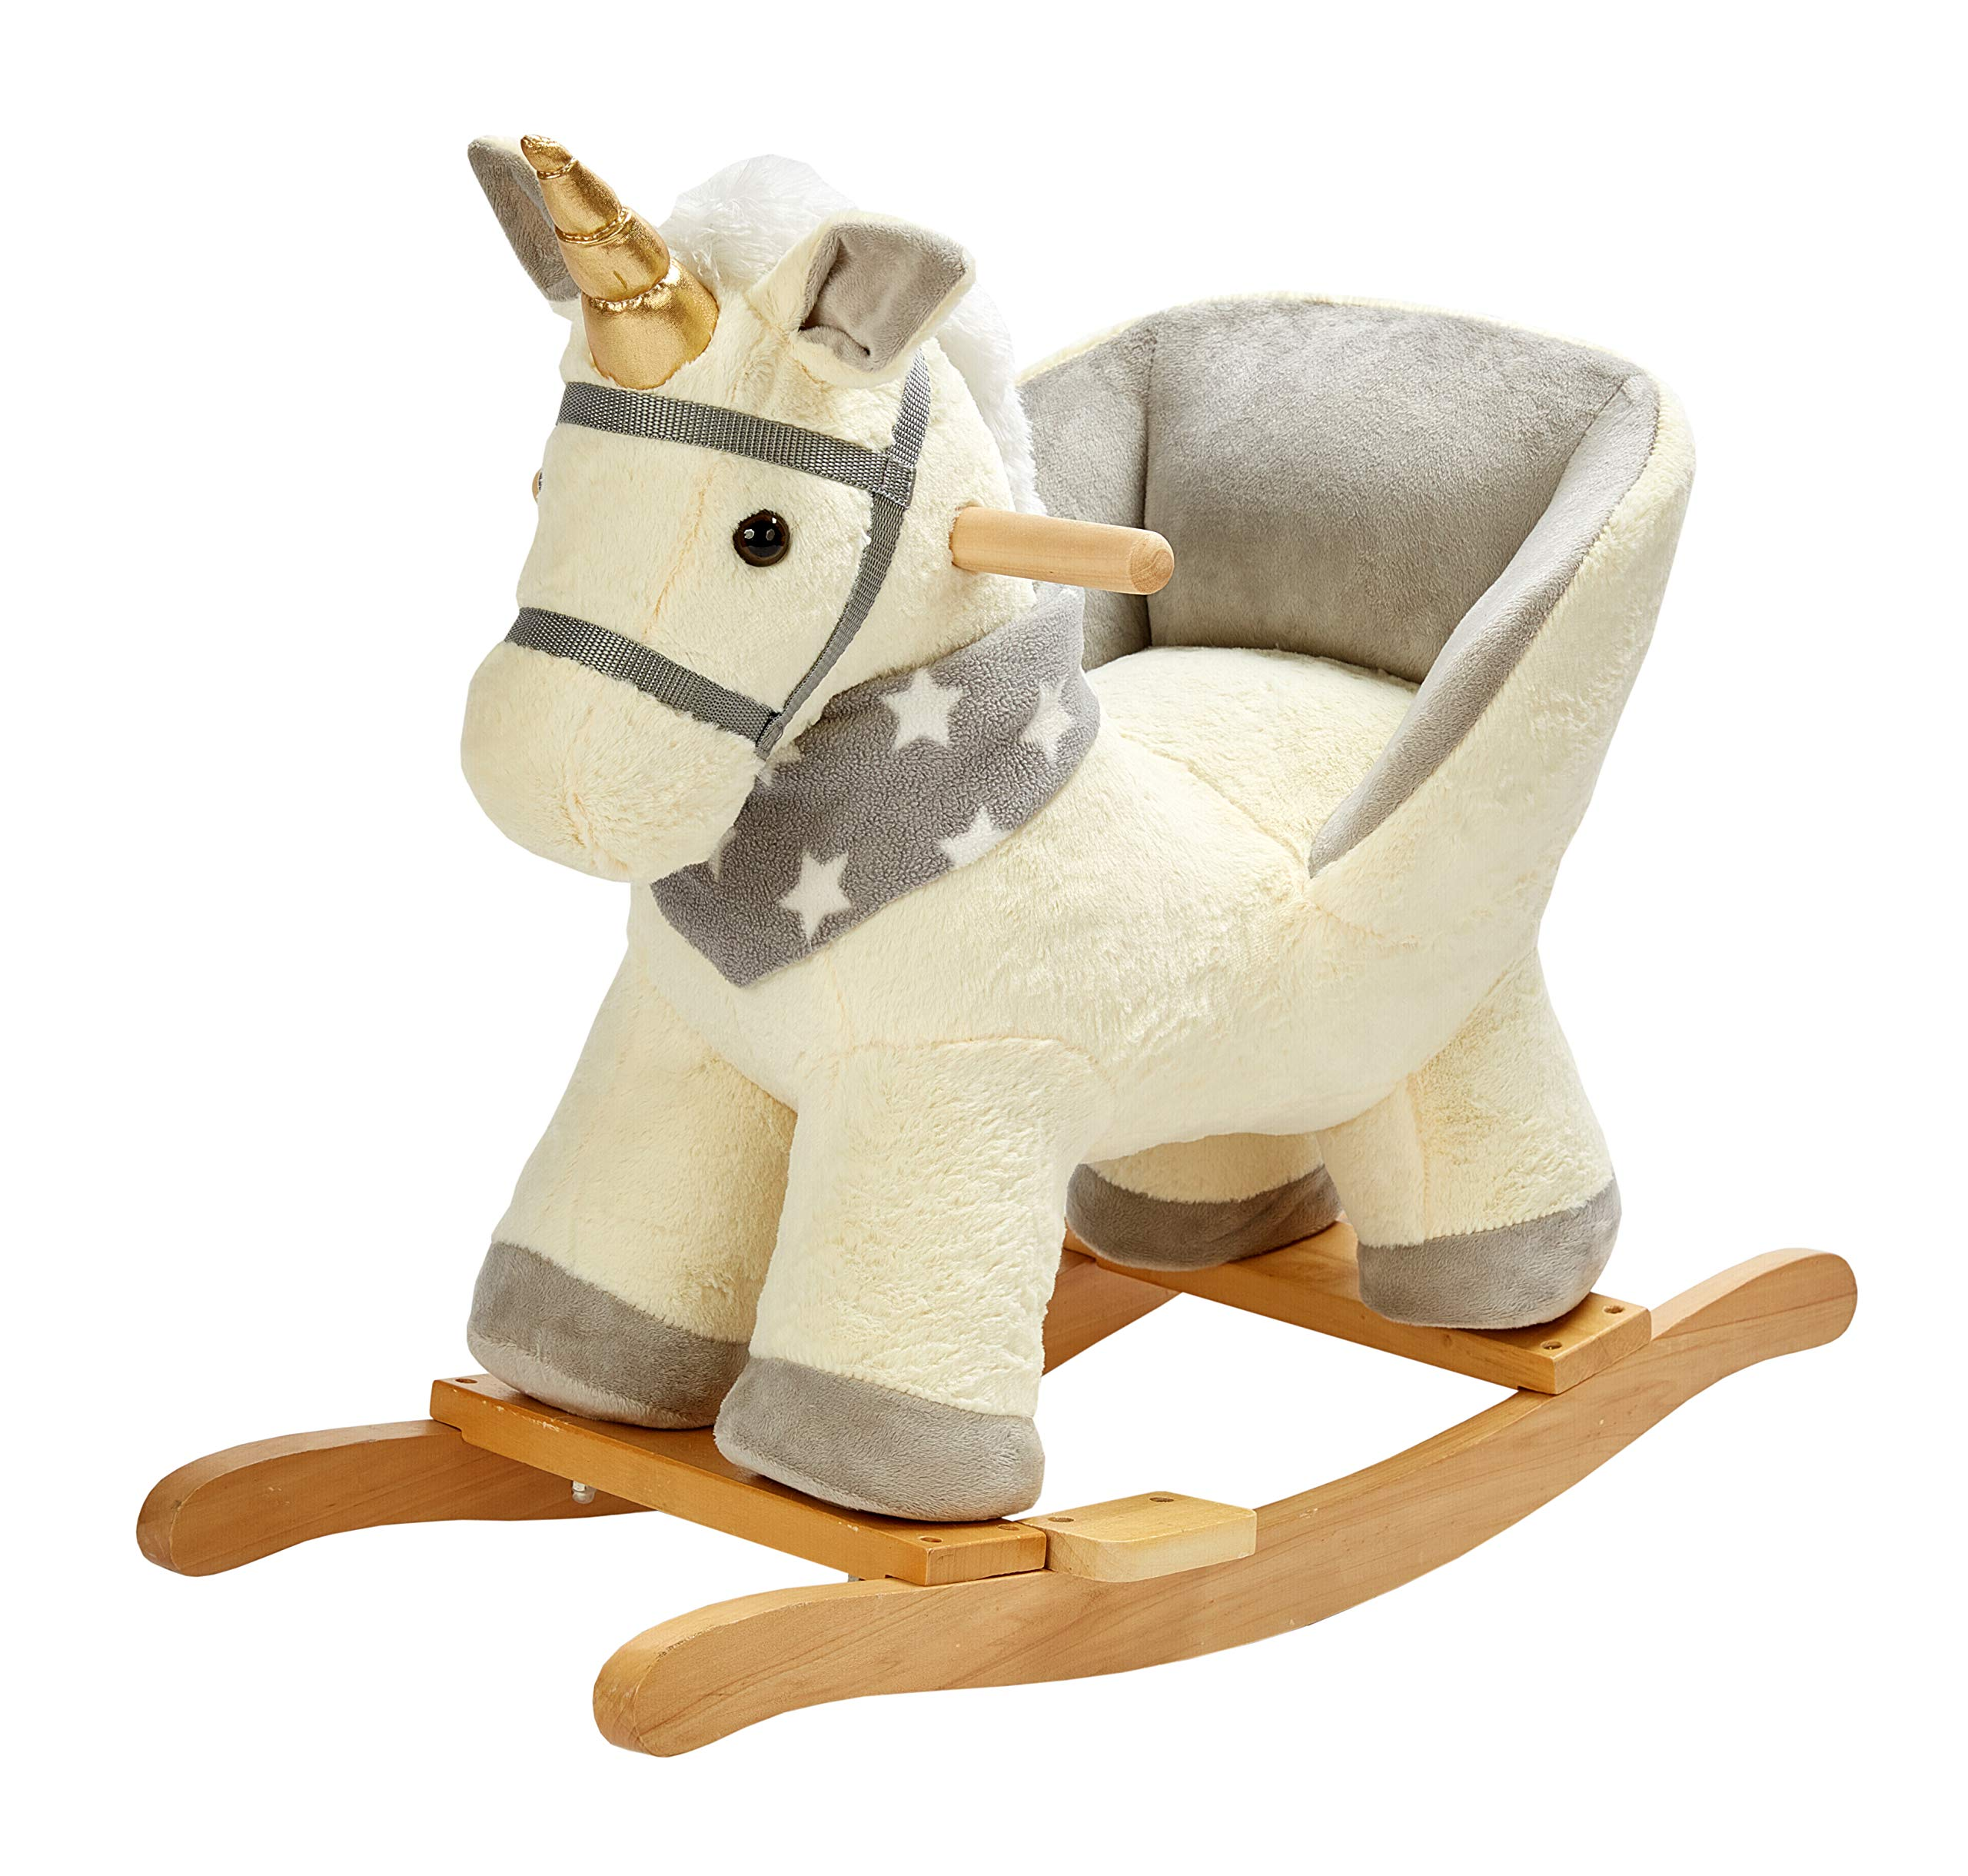 Rock My Baby Rocking Horse Beige Unicorn with Chair,Plush Stuffed Animal Rocker,Wooden Rocking Toy Unicorn/Baby Rocker/Animal Ride on,Home Decor,for Girls,Indoor&Outdoor (Beige Unicorn)